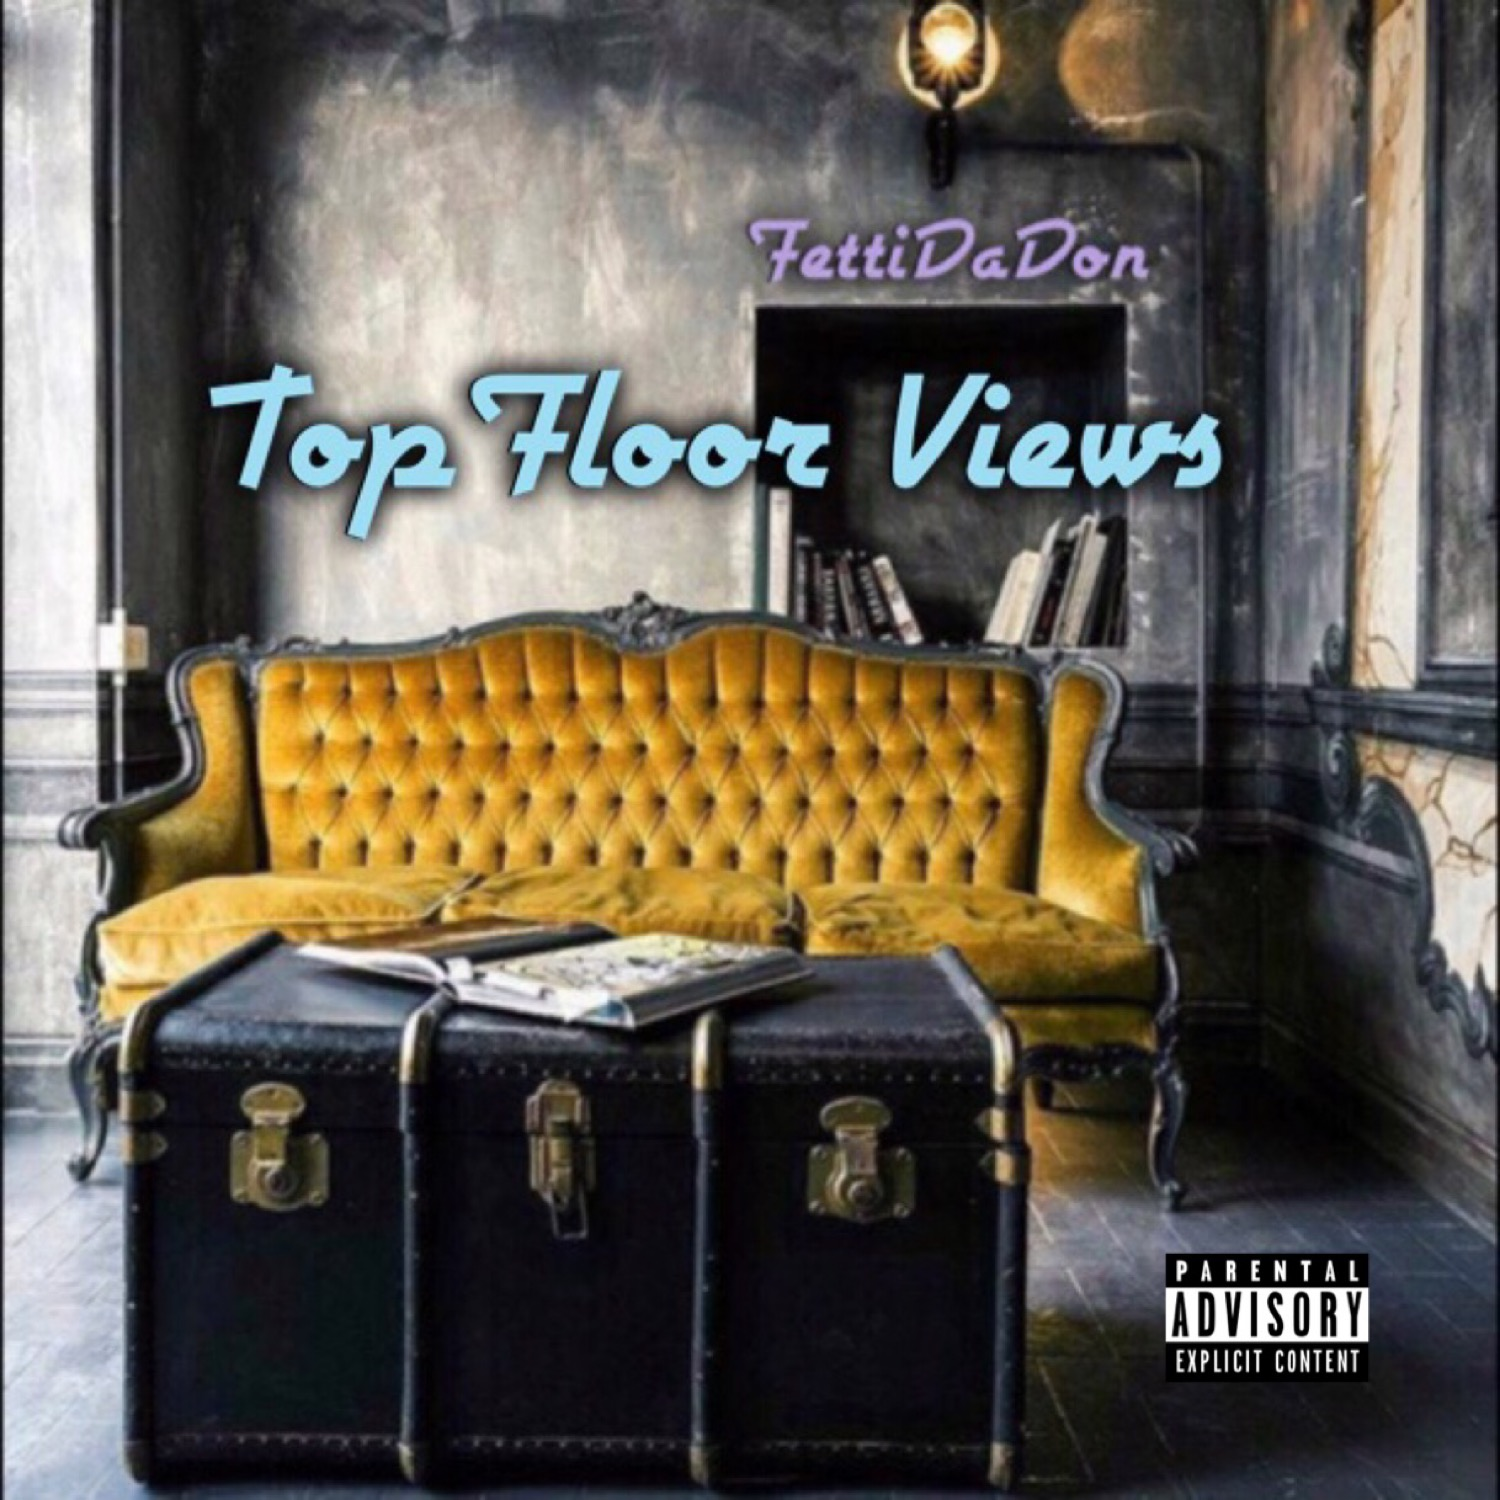 Fetti Da Don - Top Floor Views - Explicit Single - Rev.jpeg